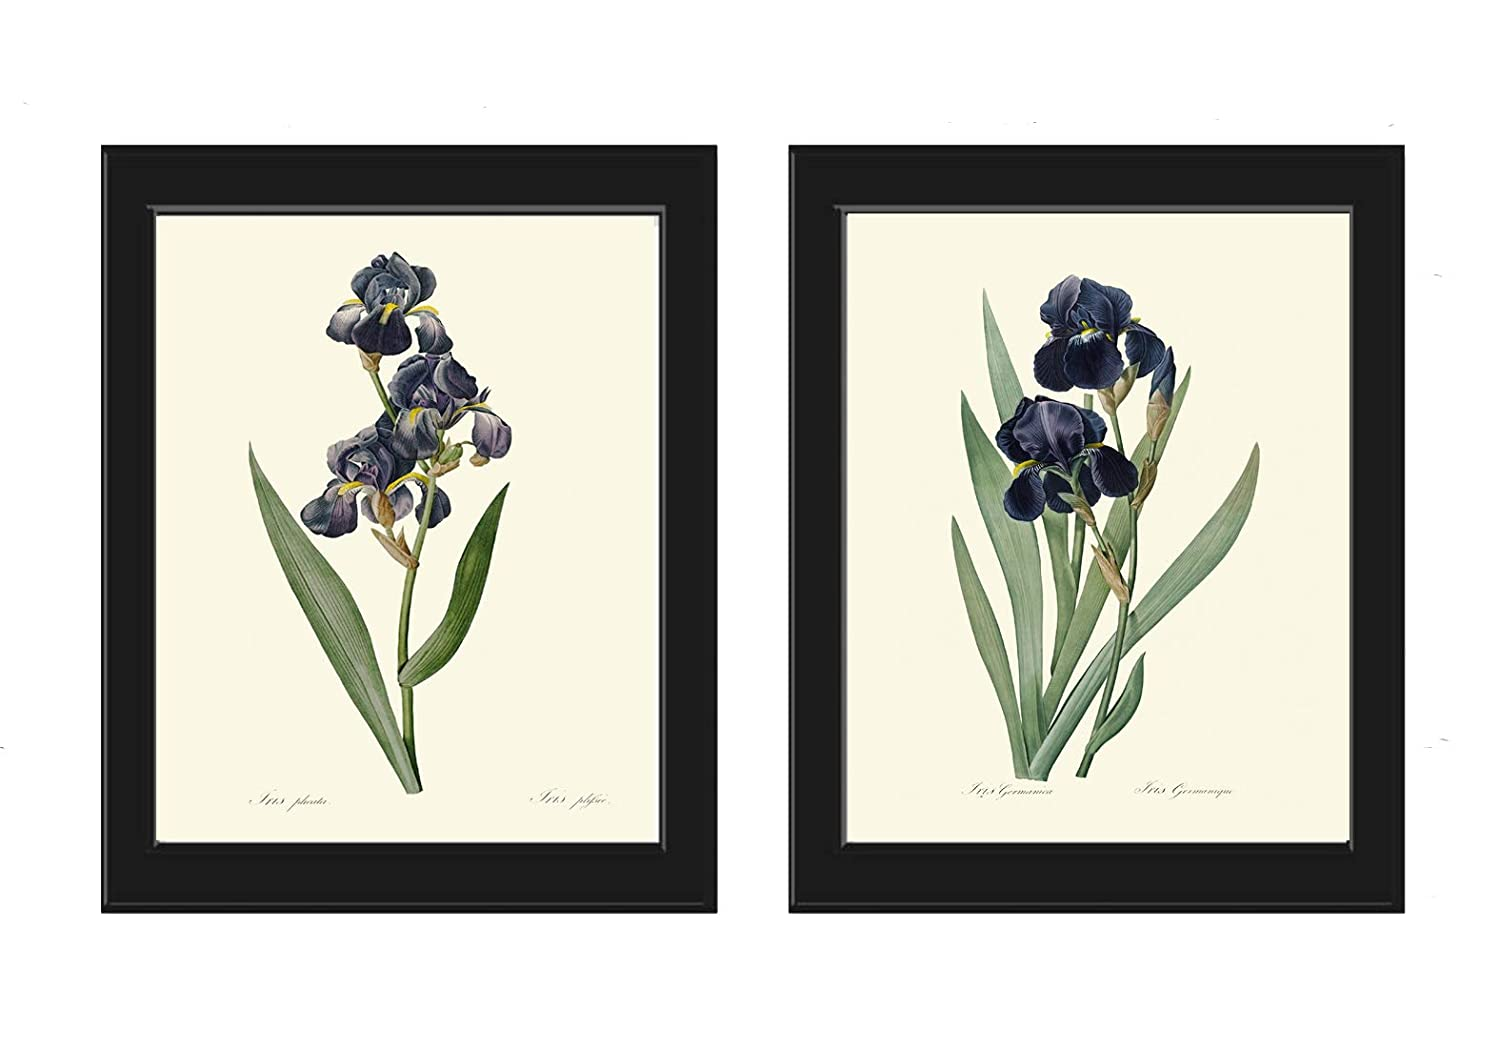 Blue Iris Wall Art Print Set of 2 Prints Beautiful Antique Flowers Botanical Illustration Picture Spring Summer Garden Plants Nature Home Decor Unframed RE LoveThePrint